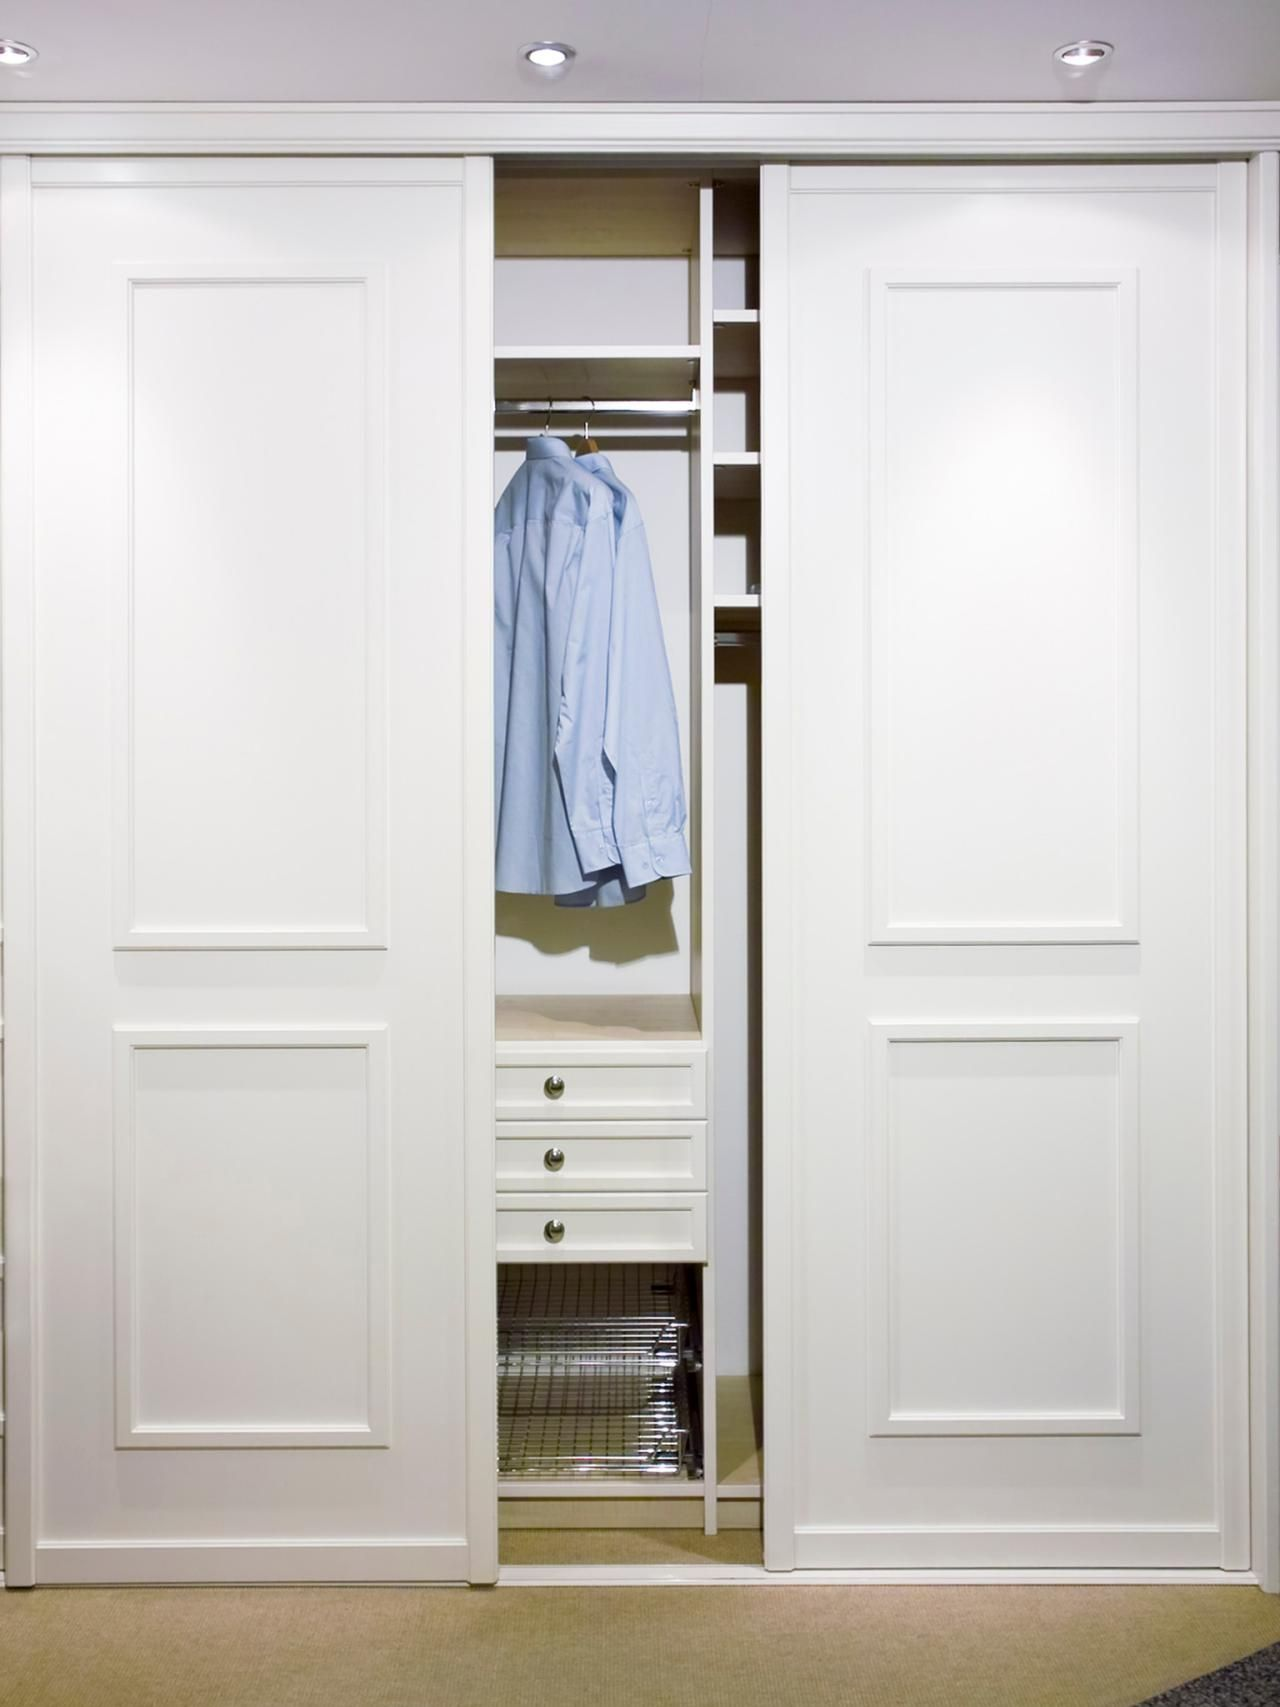 Charming Customize Your Sliding Closet Doors To Be A Perfect Fit For Your Home,  Family And